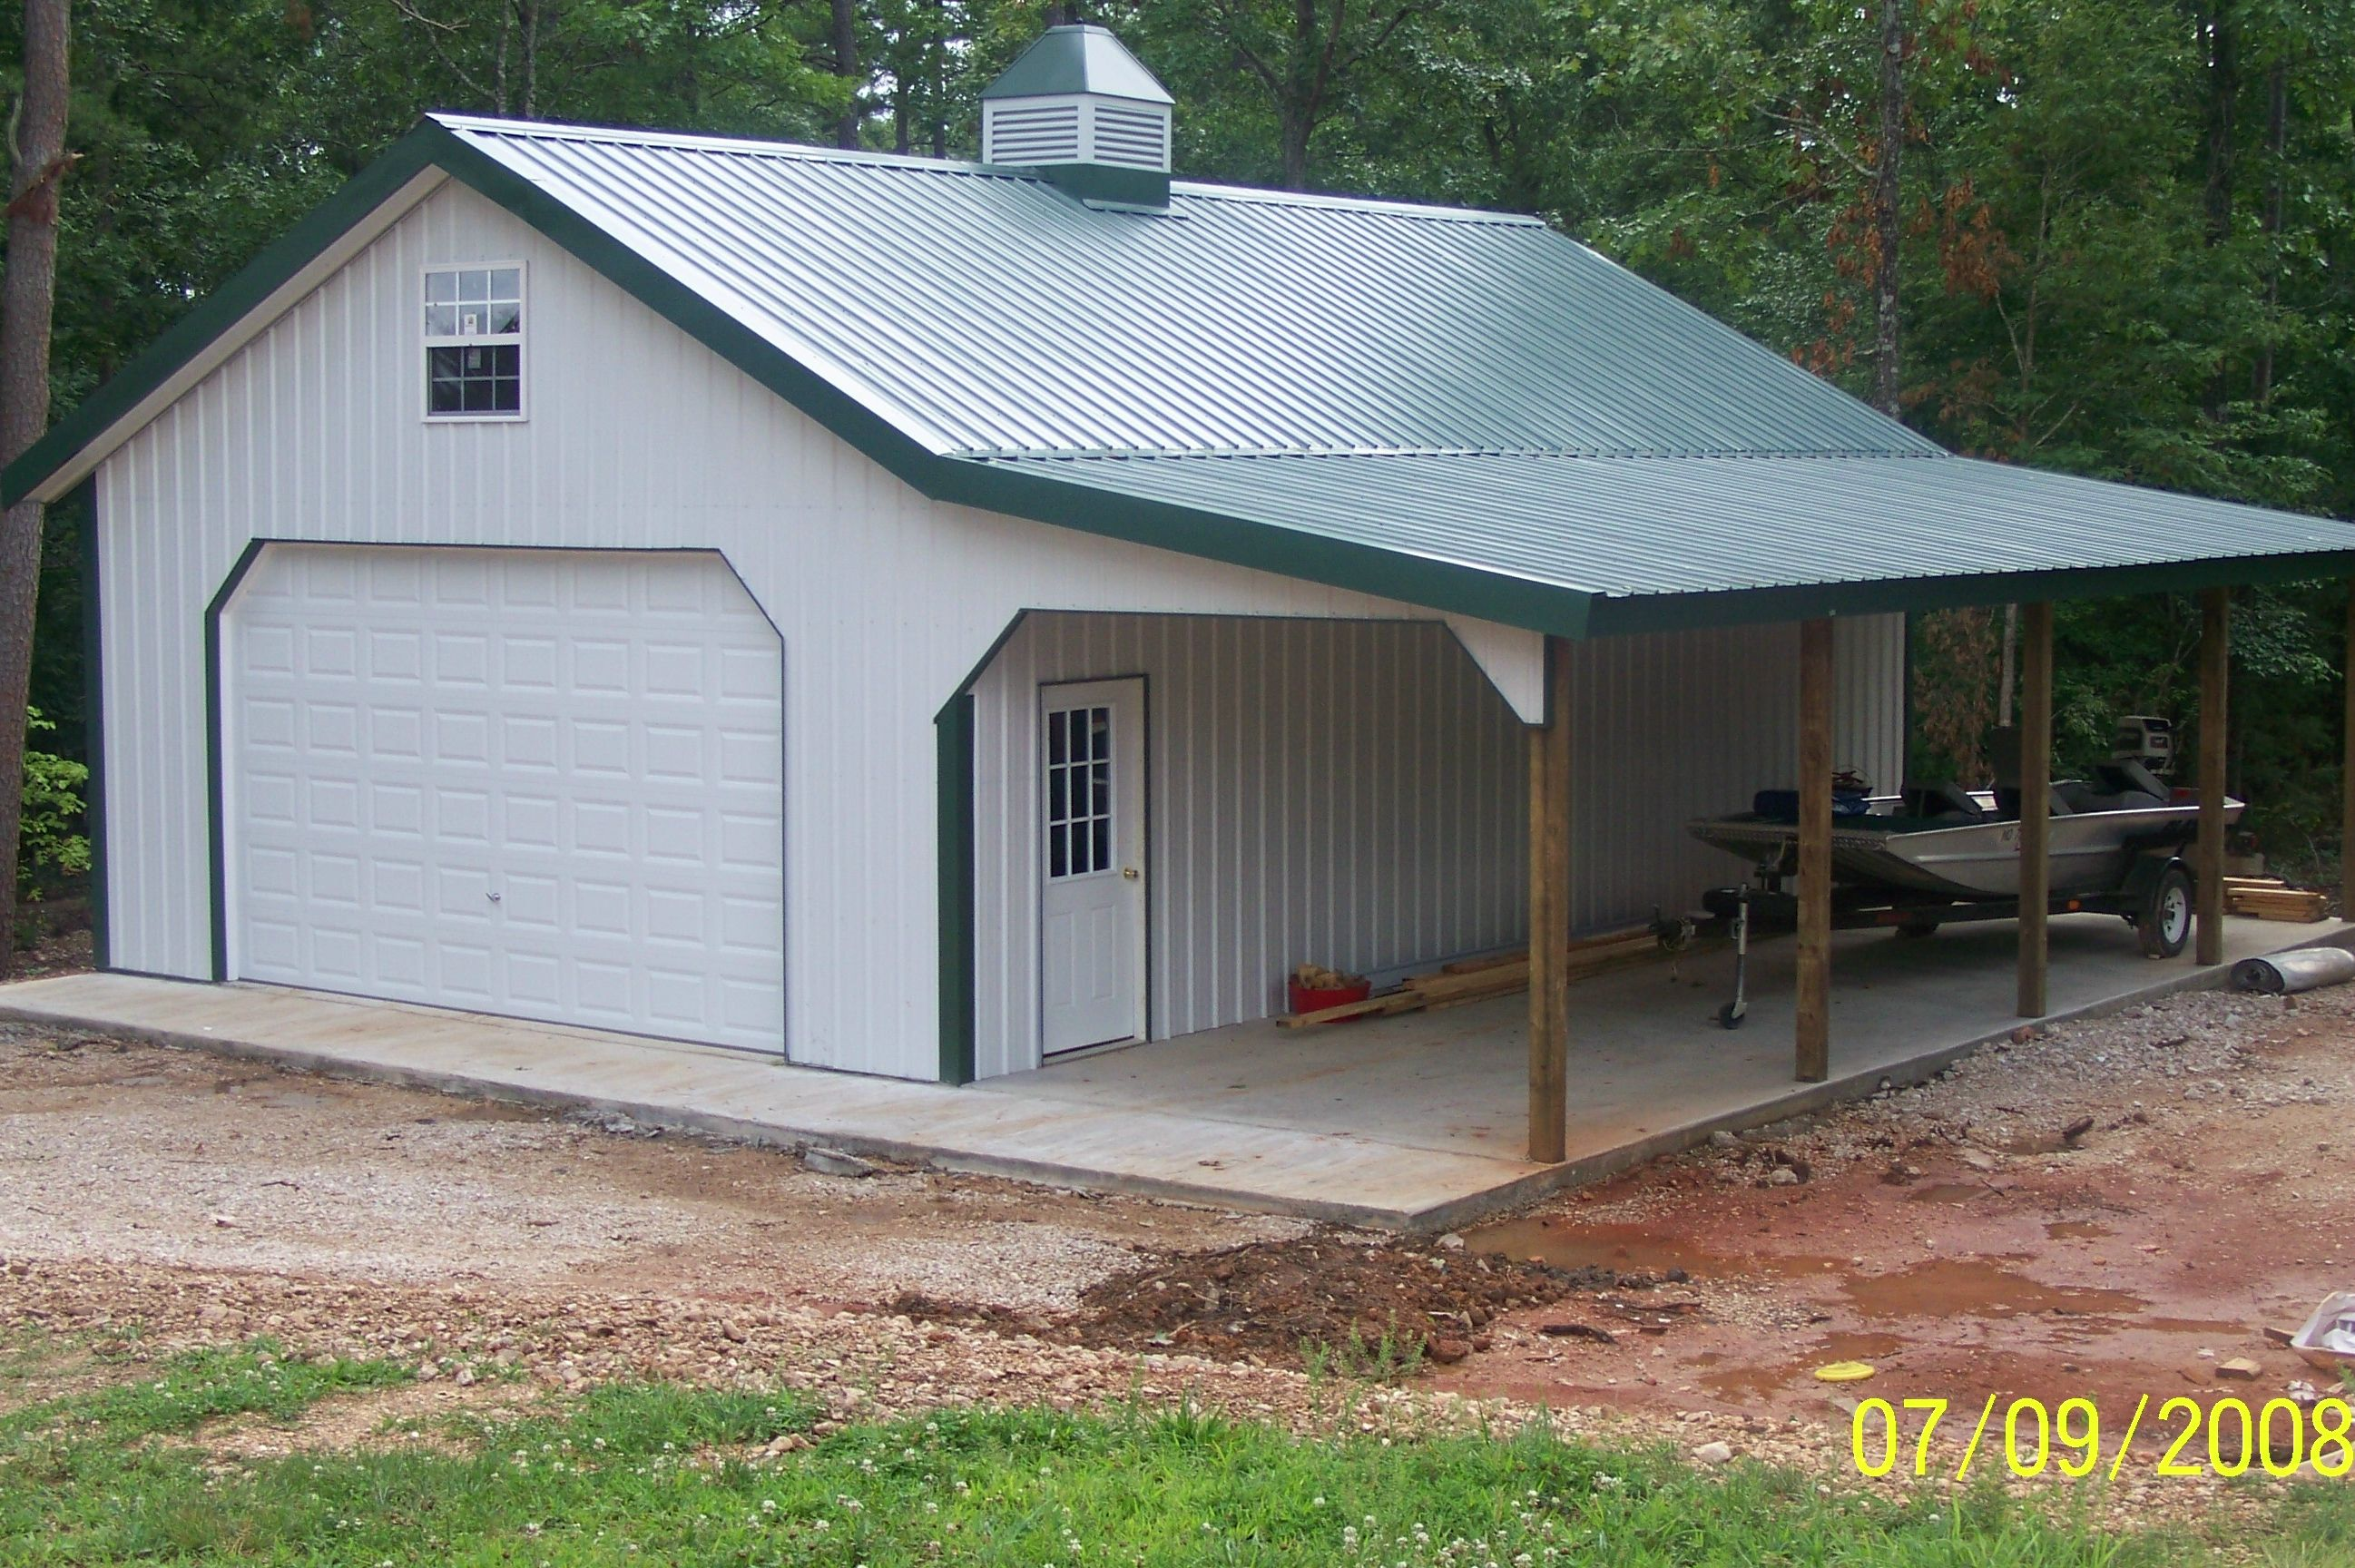 Decor tips metal roofing for pole barn houses with prefab for Prefab roof